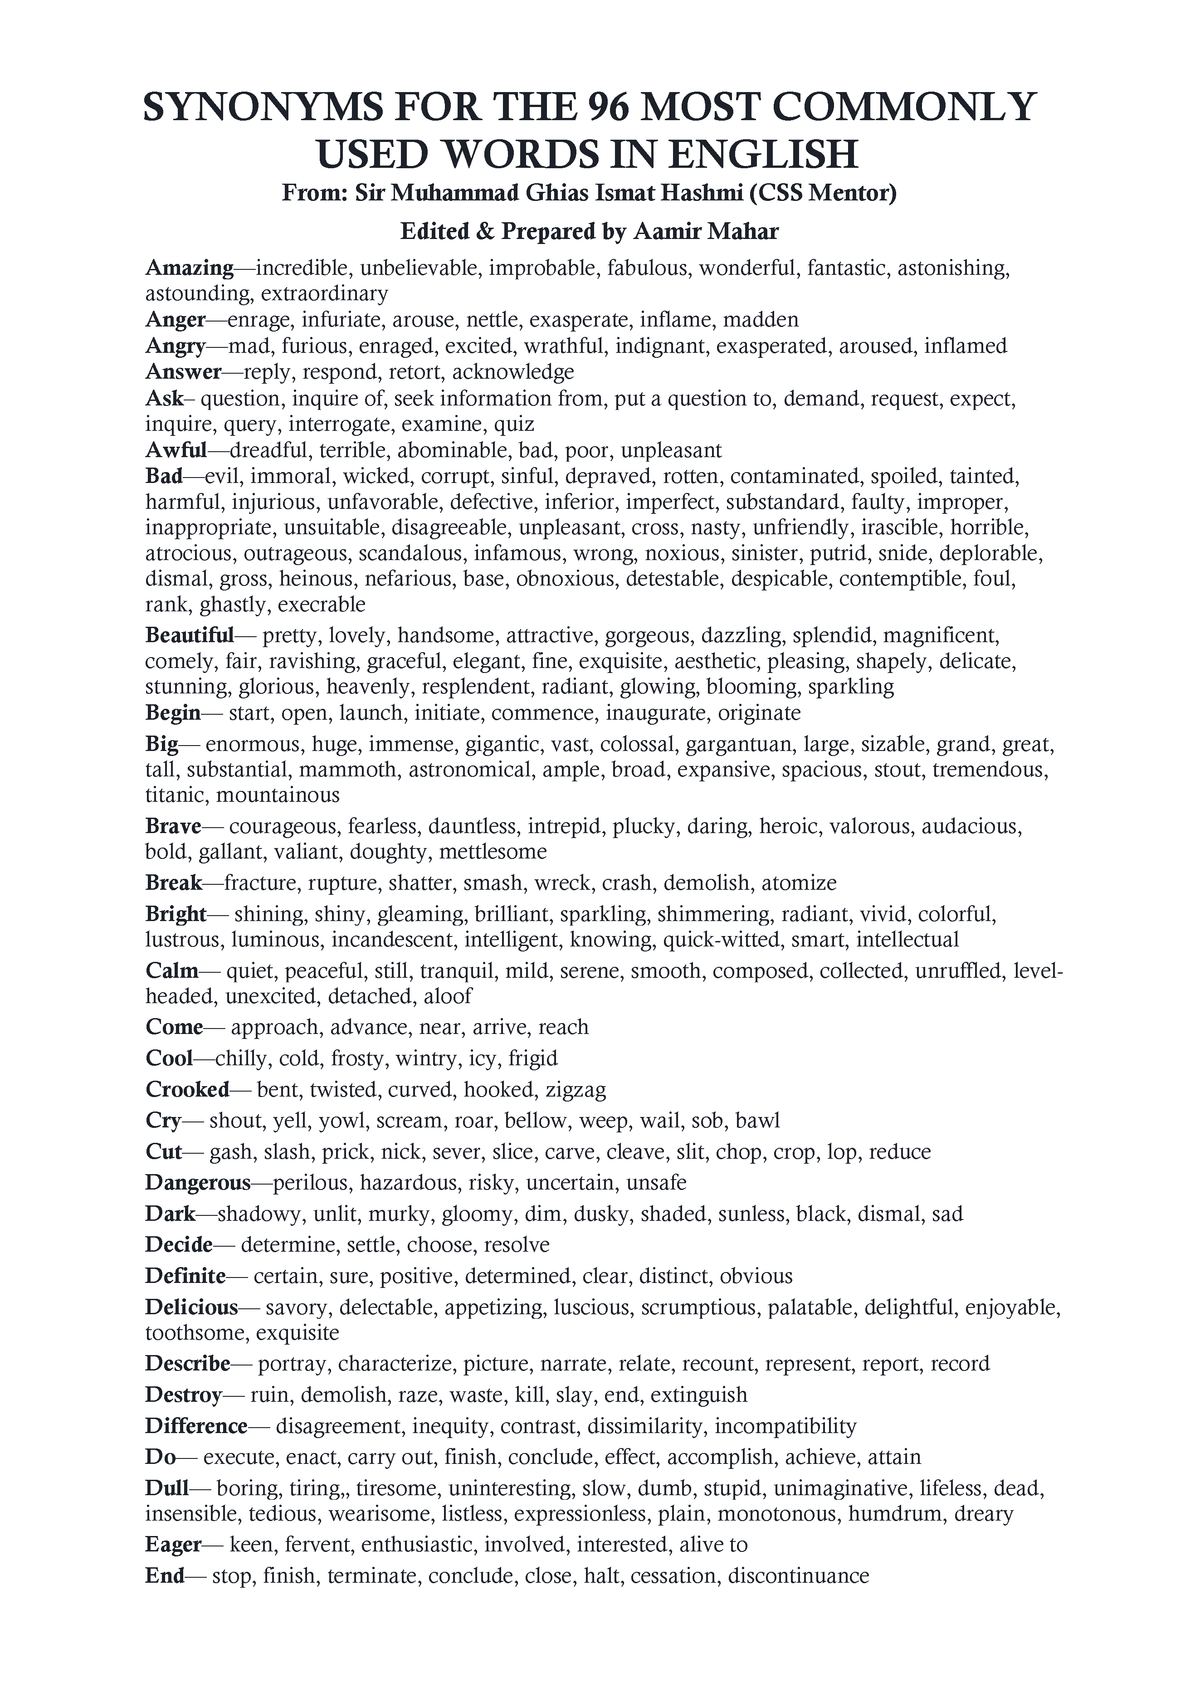 Synonyms for the 96 most commonly used words in English (Sir